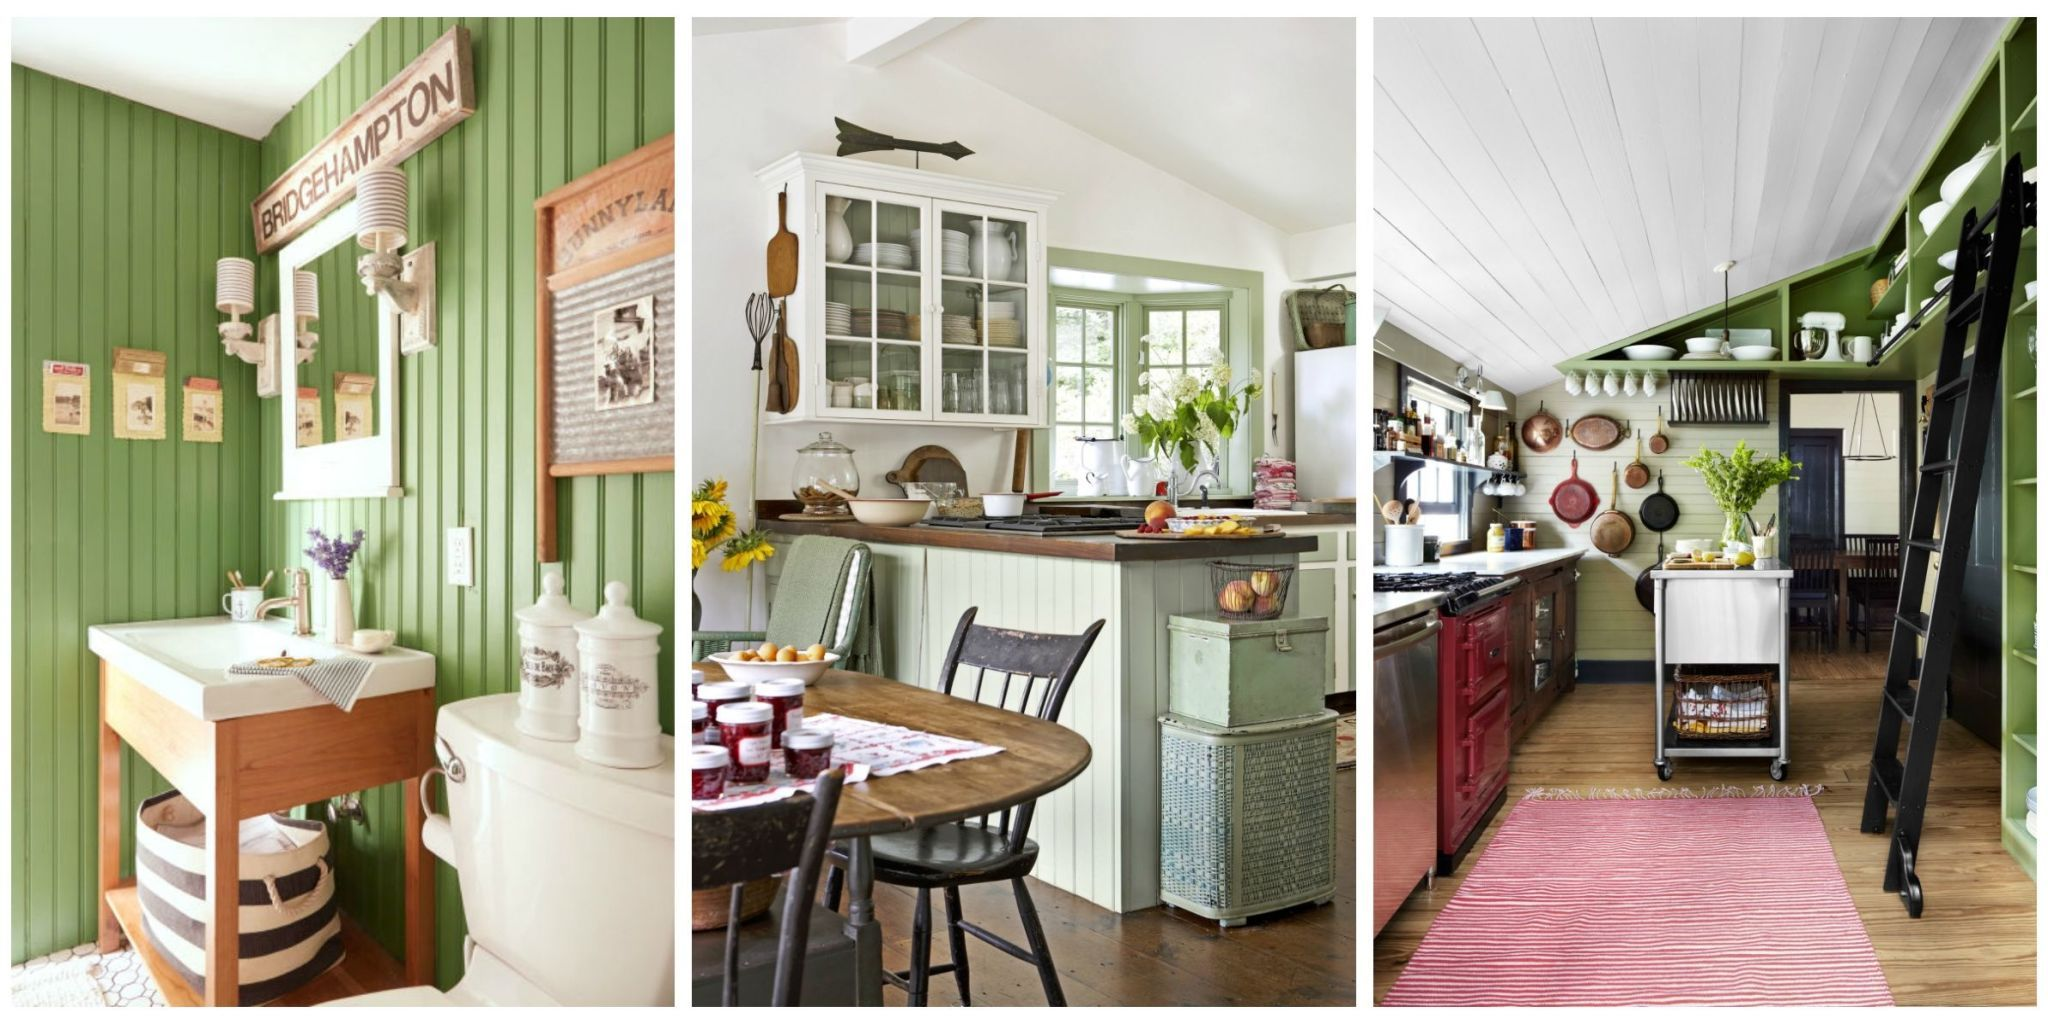 N From Kelly To Kiwi Decorating With Green Has Never Been Easier Our  Tips And Ideas